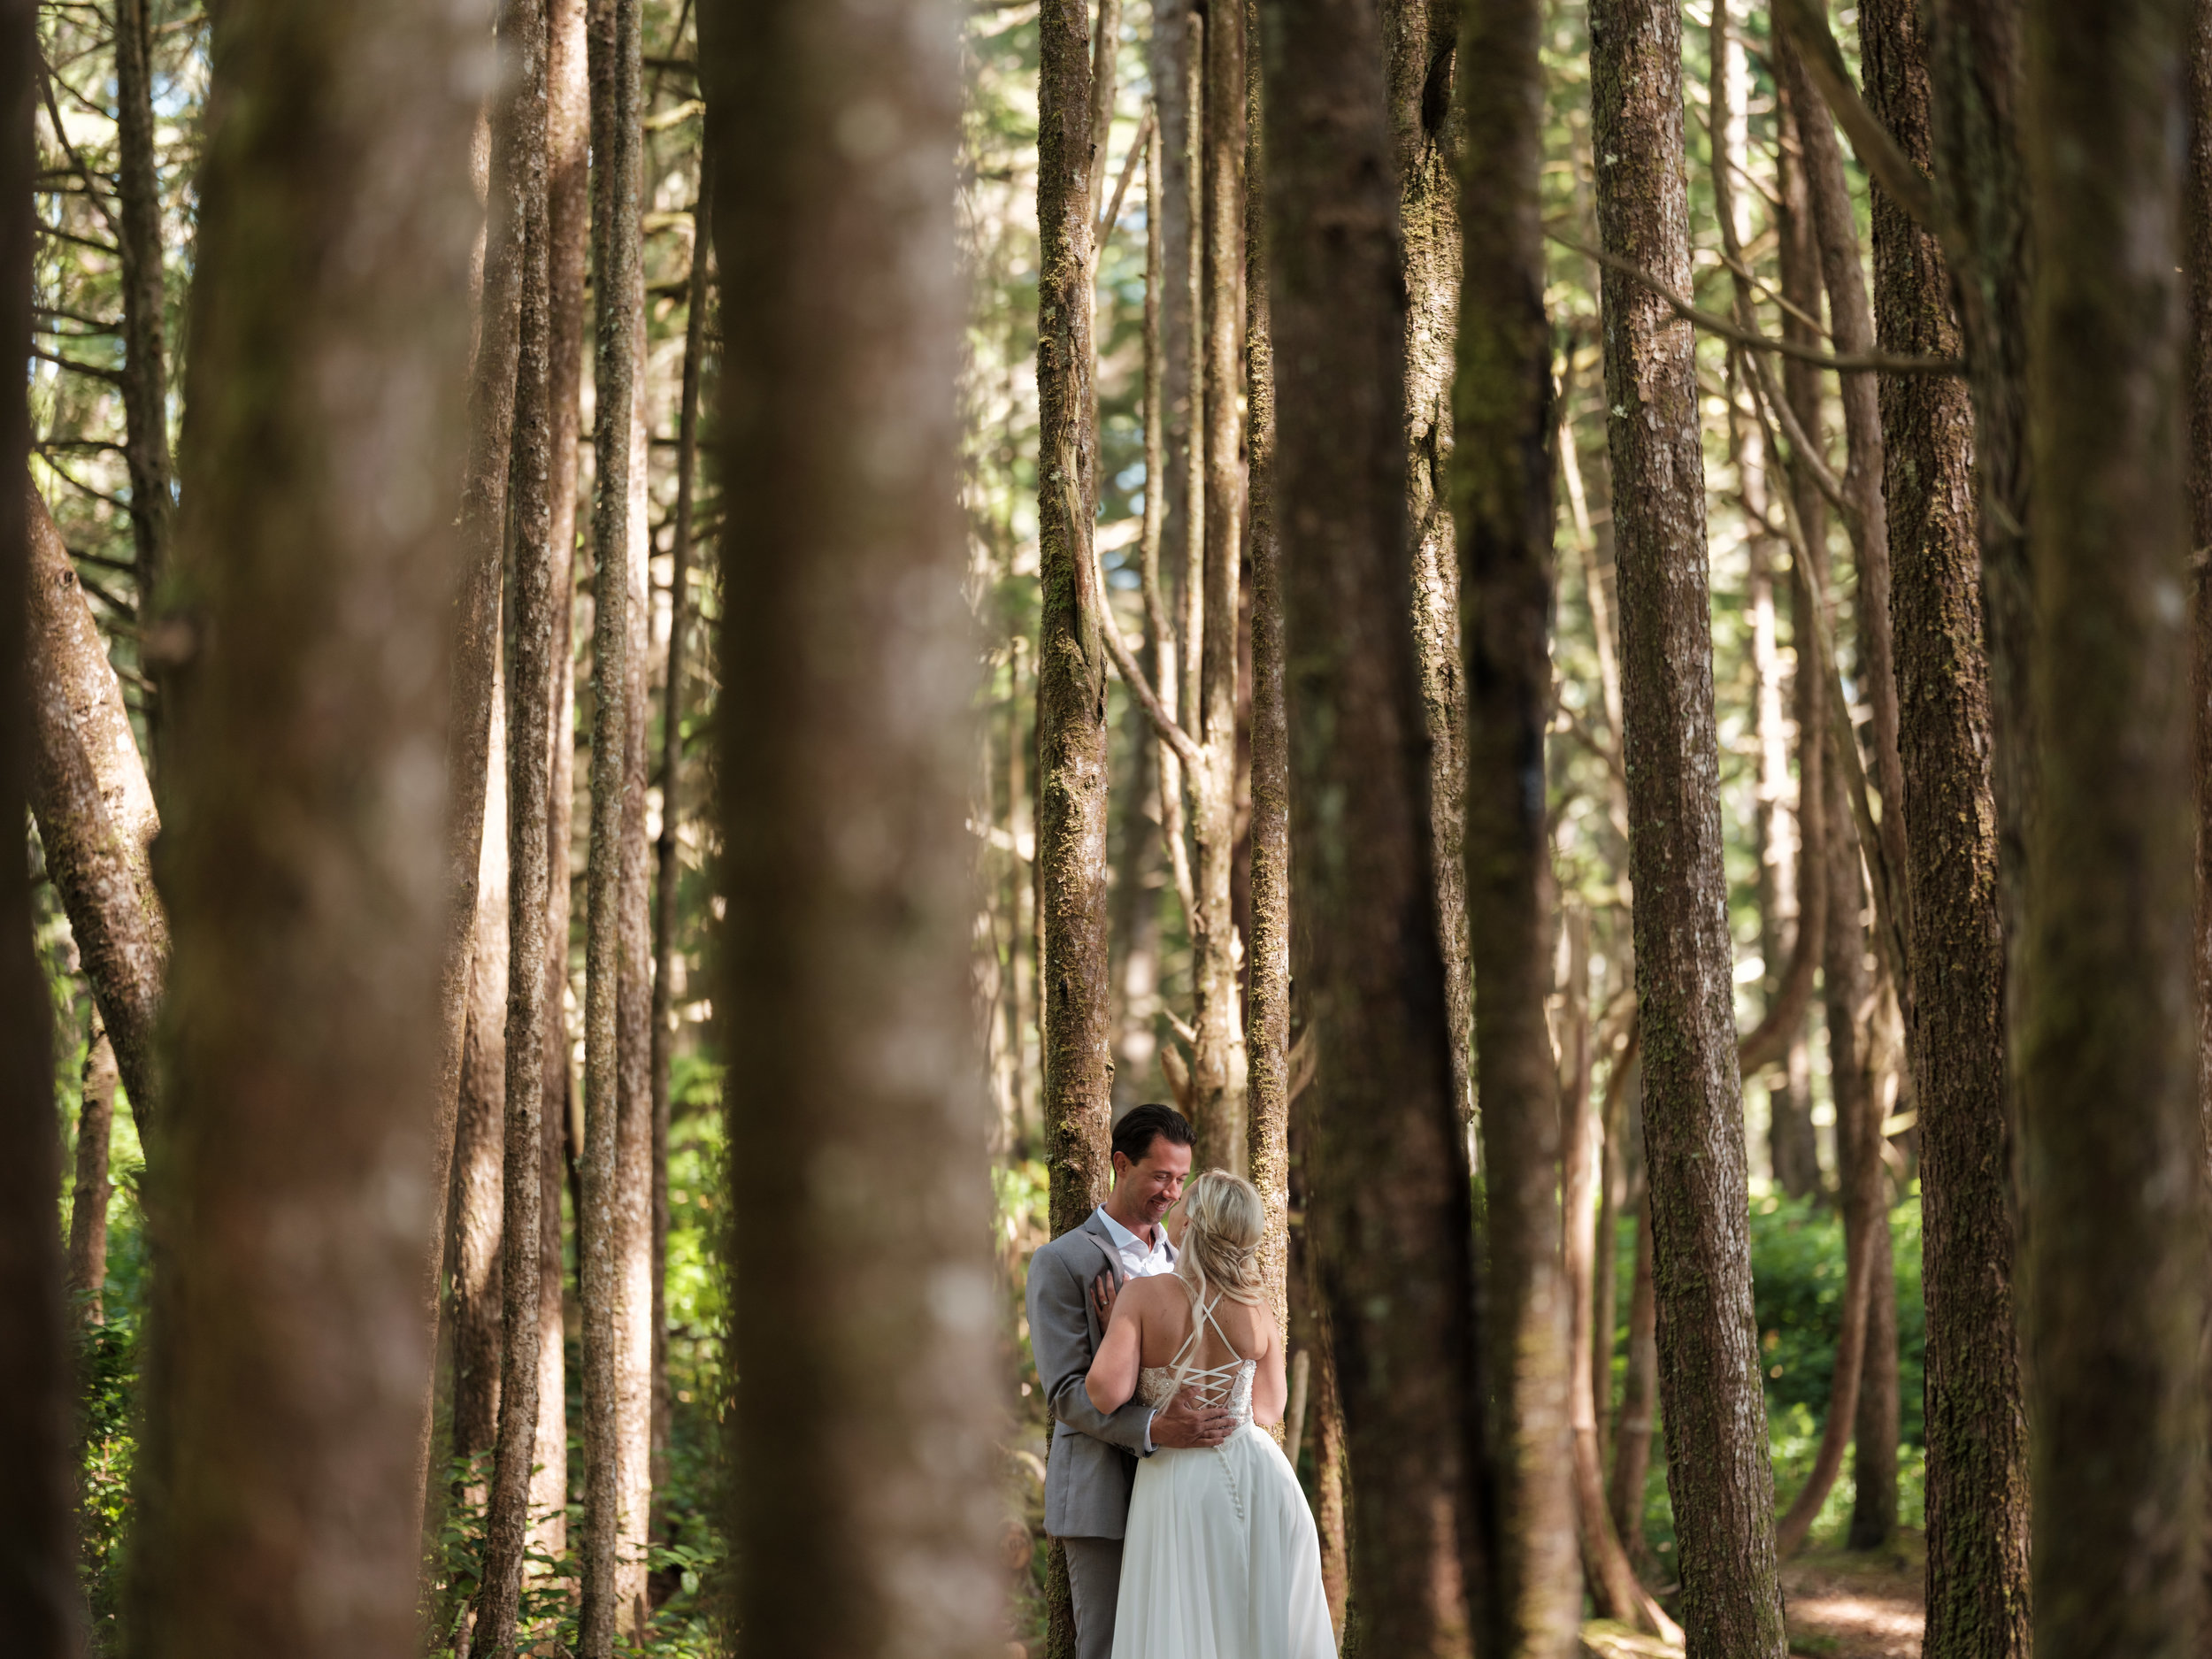 tofino ucluelet wedding engagement photographer photography PLP_18_07_AllisonSean-78.jpg